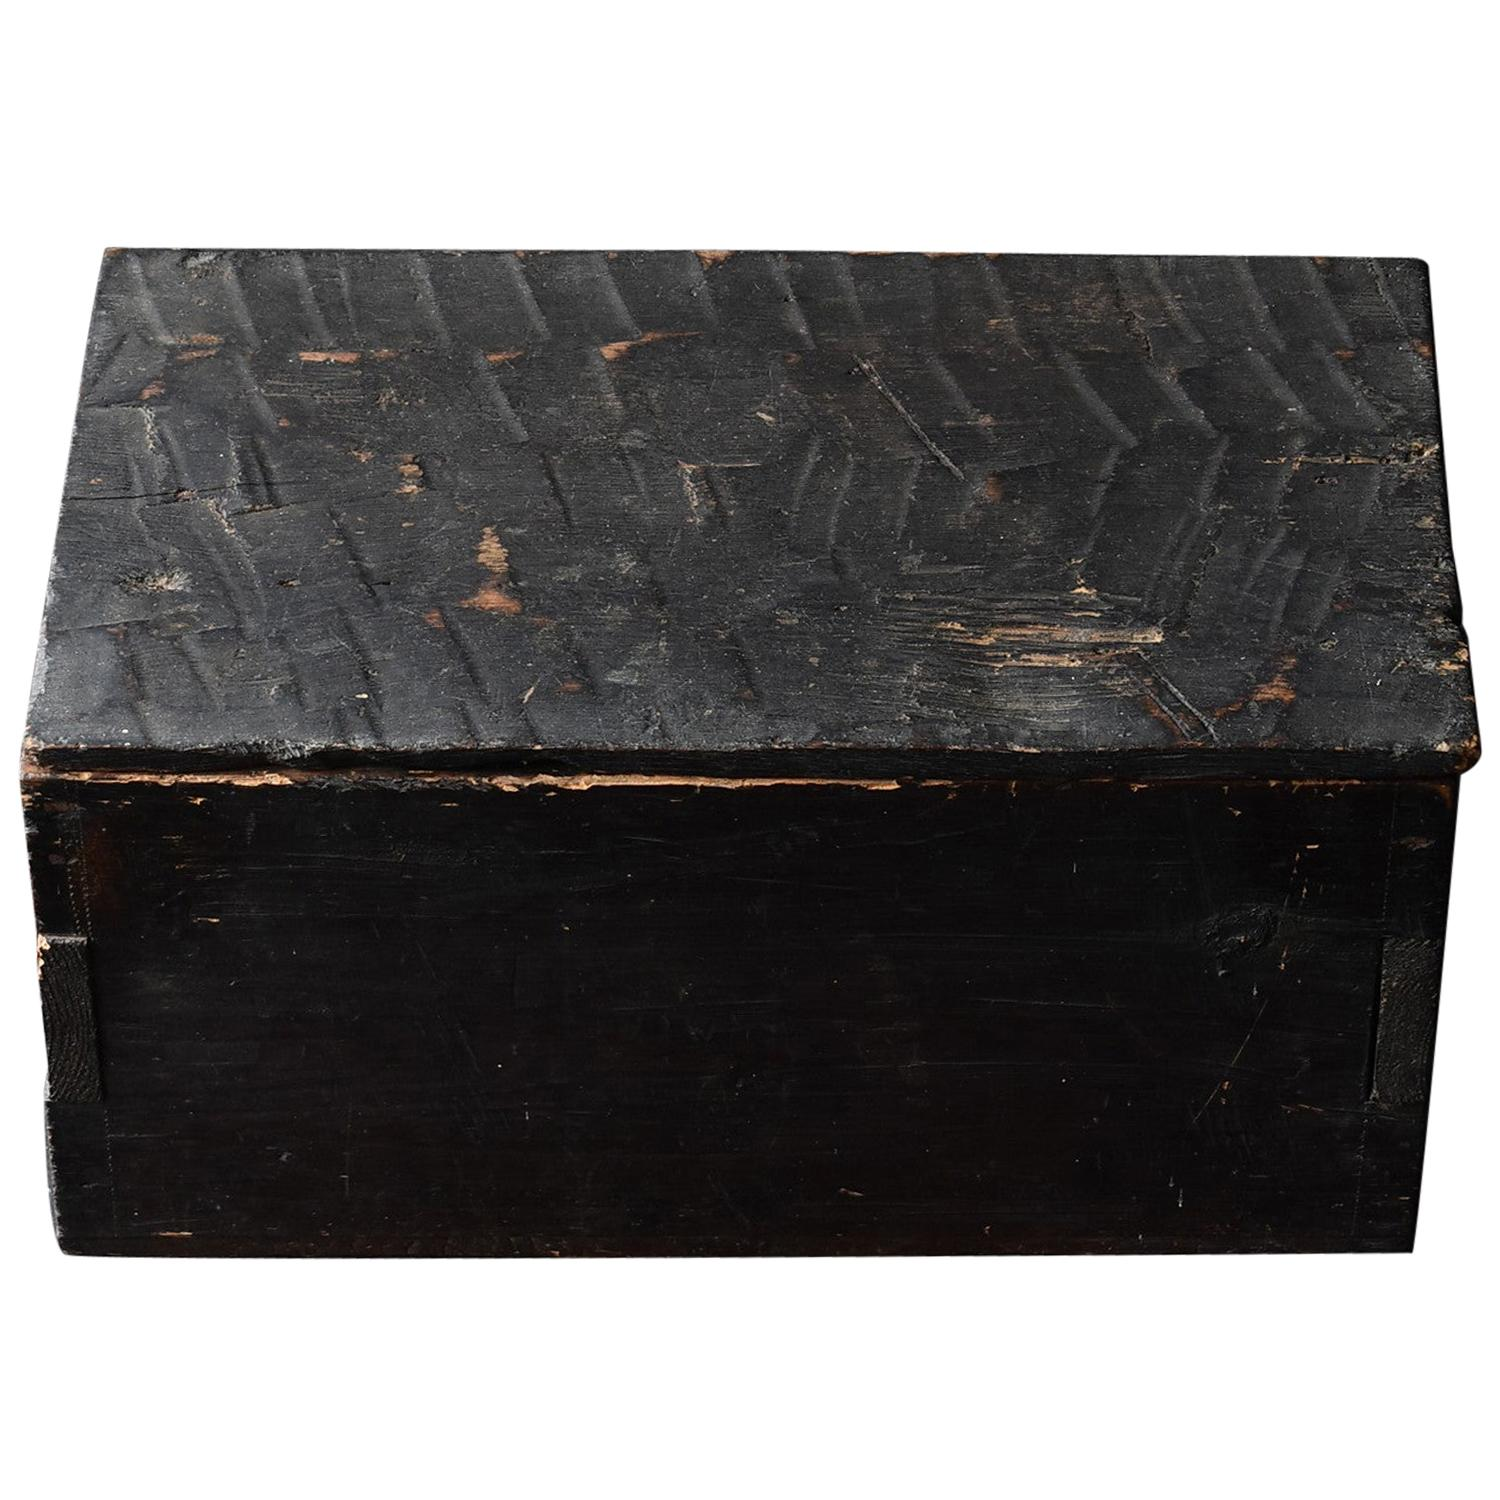 Black Wooden Box from the Edo Period '18th-19th Century' in Japan